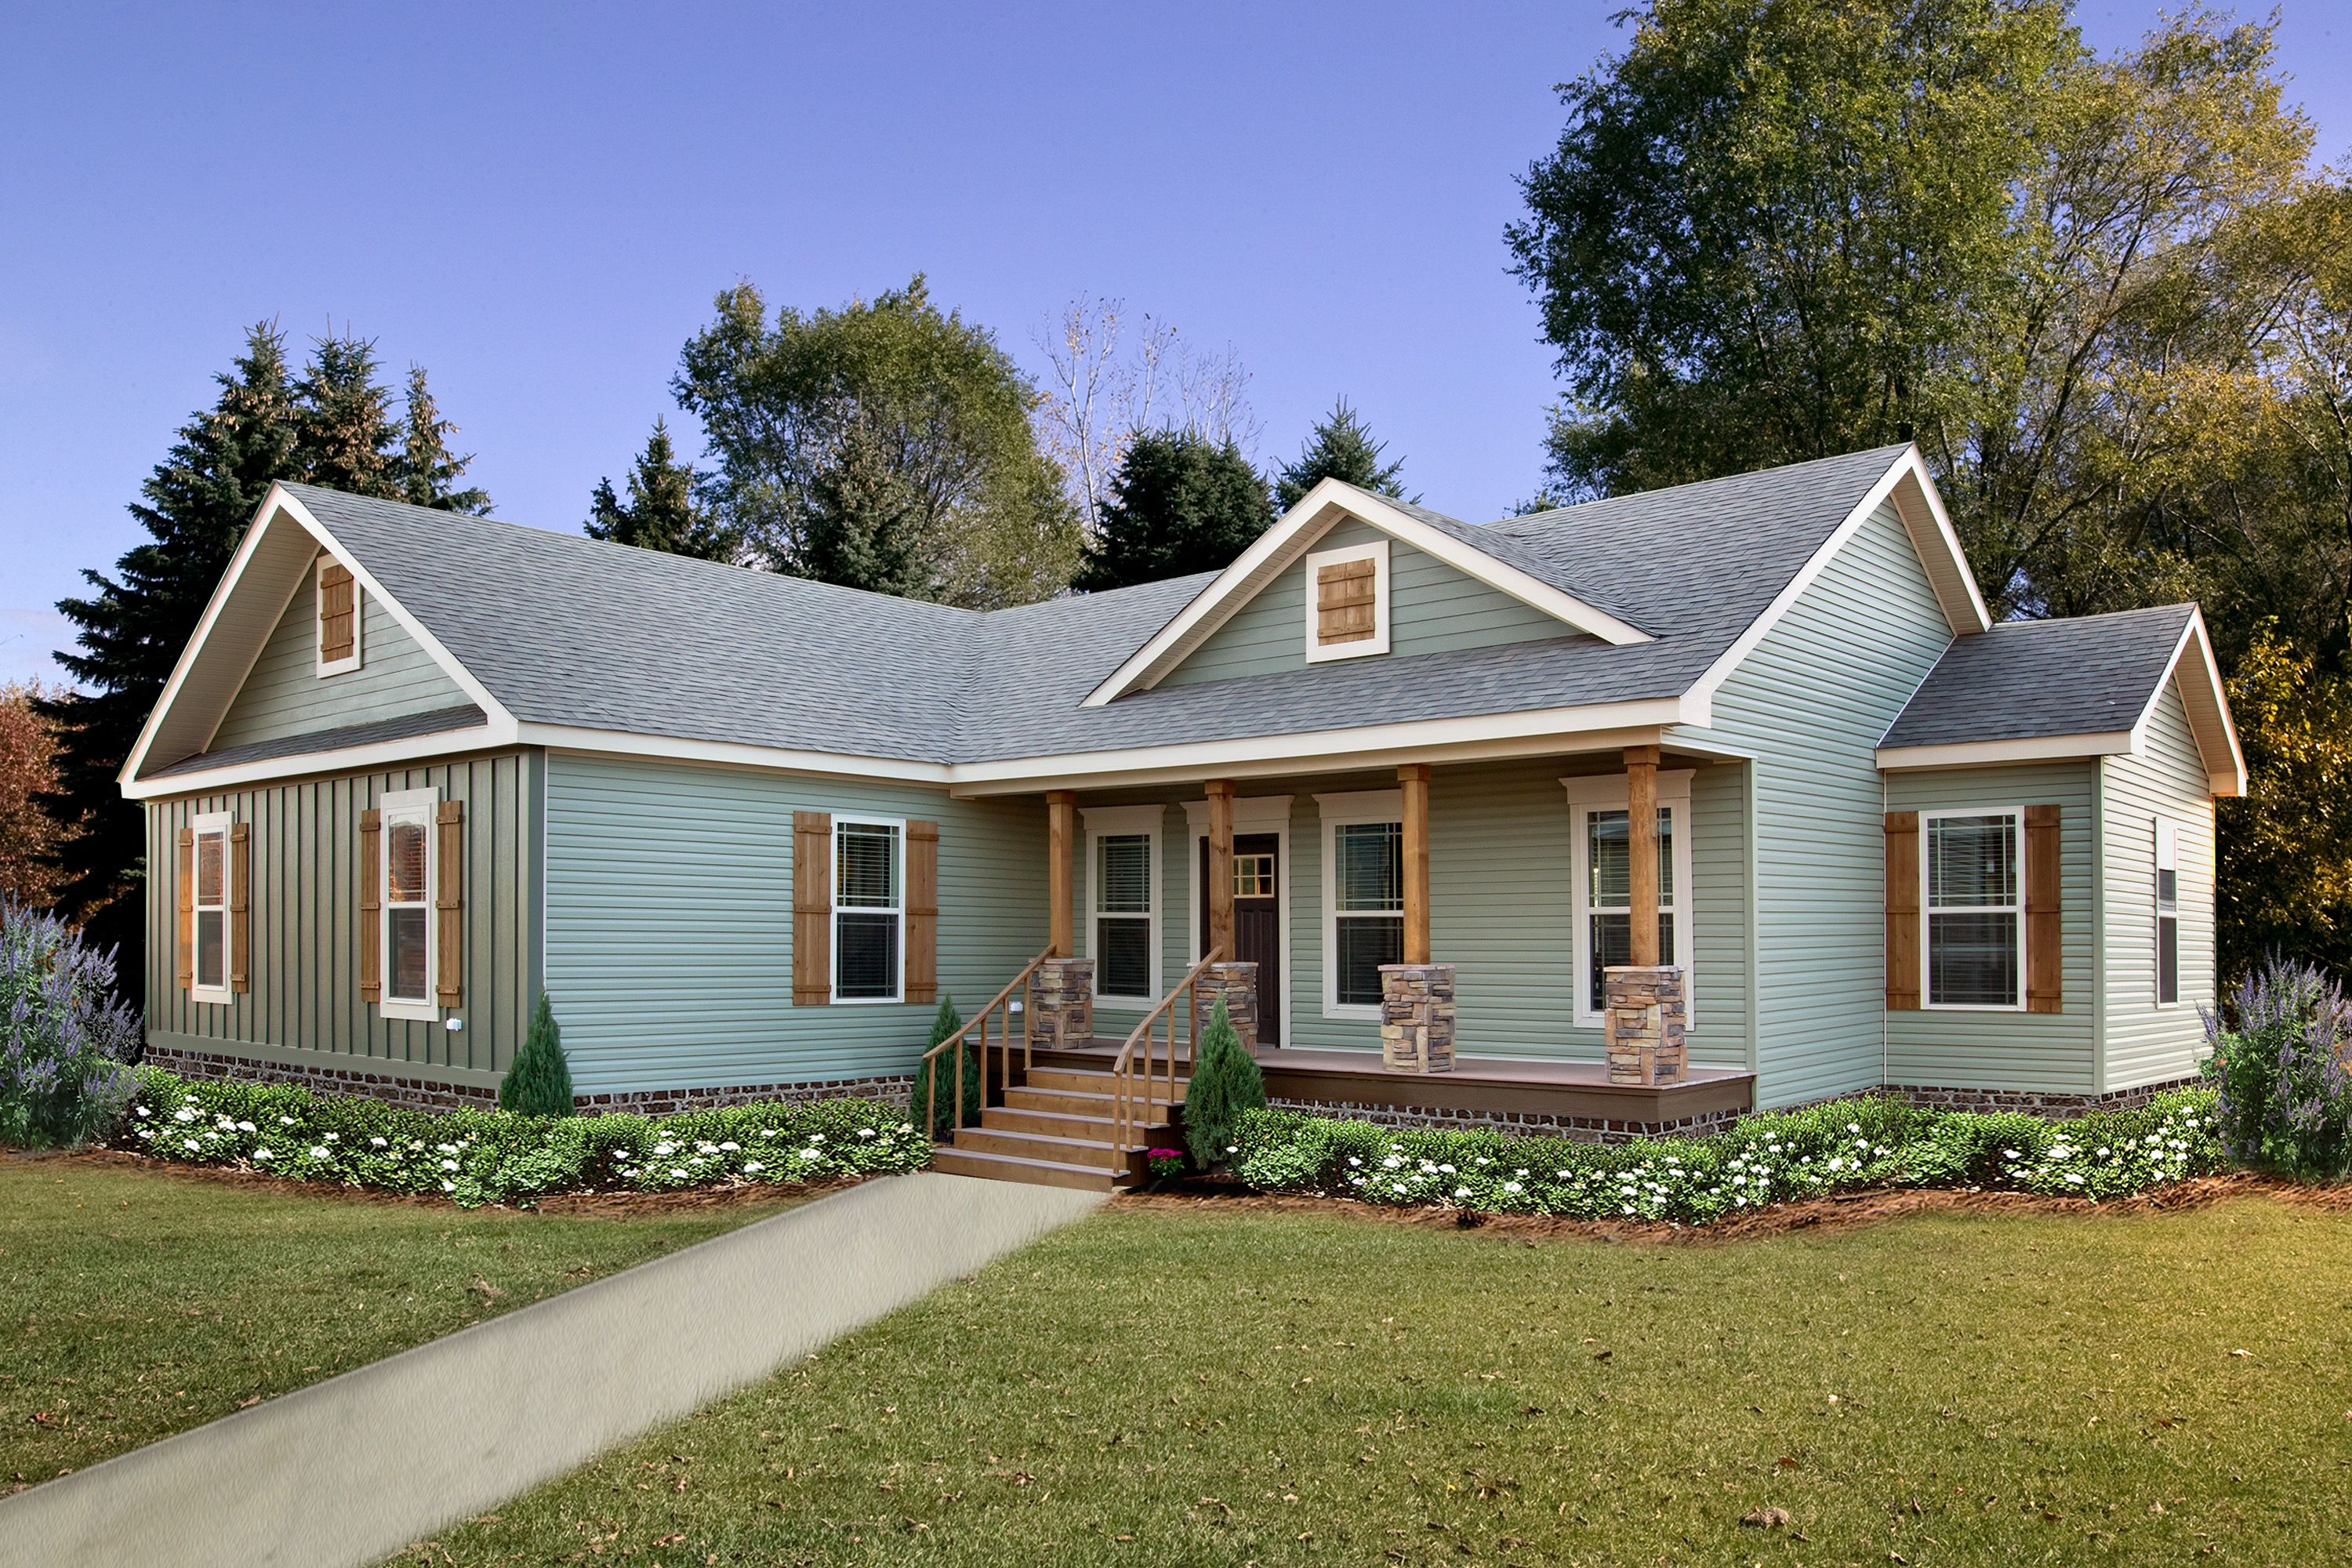 Briar Ritz House 3 Bedrooms 2 Baths Approximately 2 580